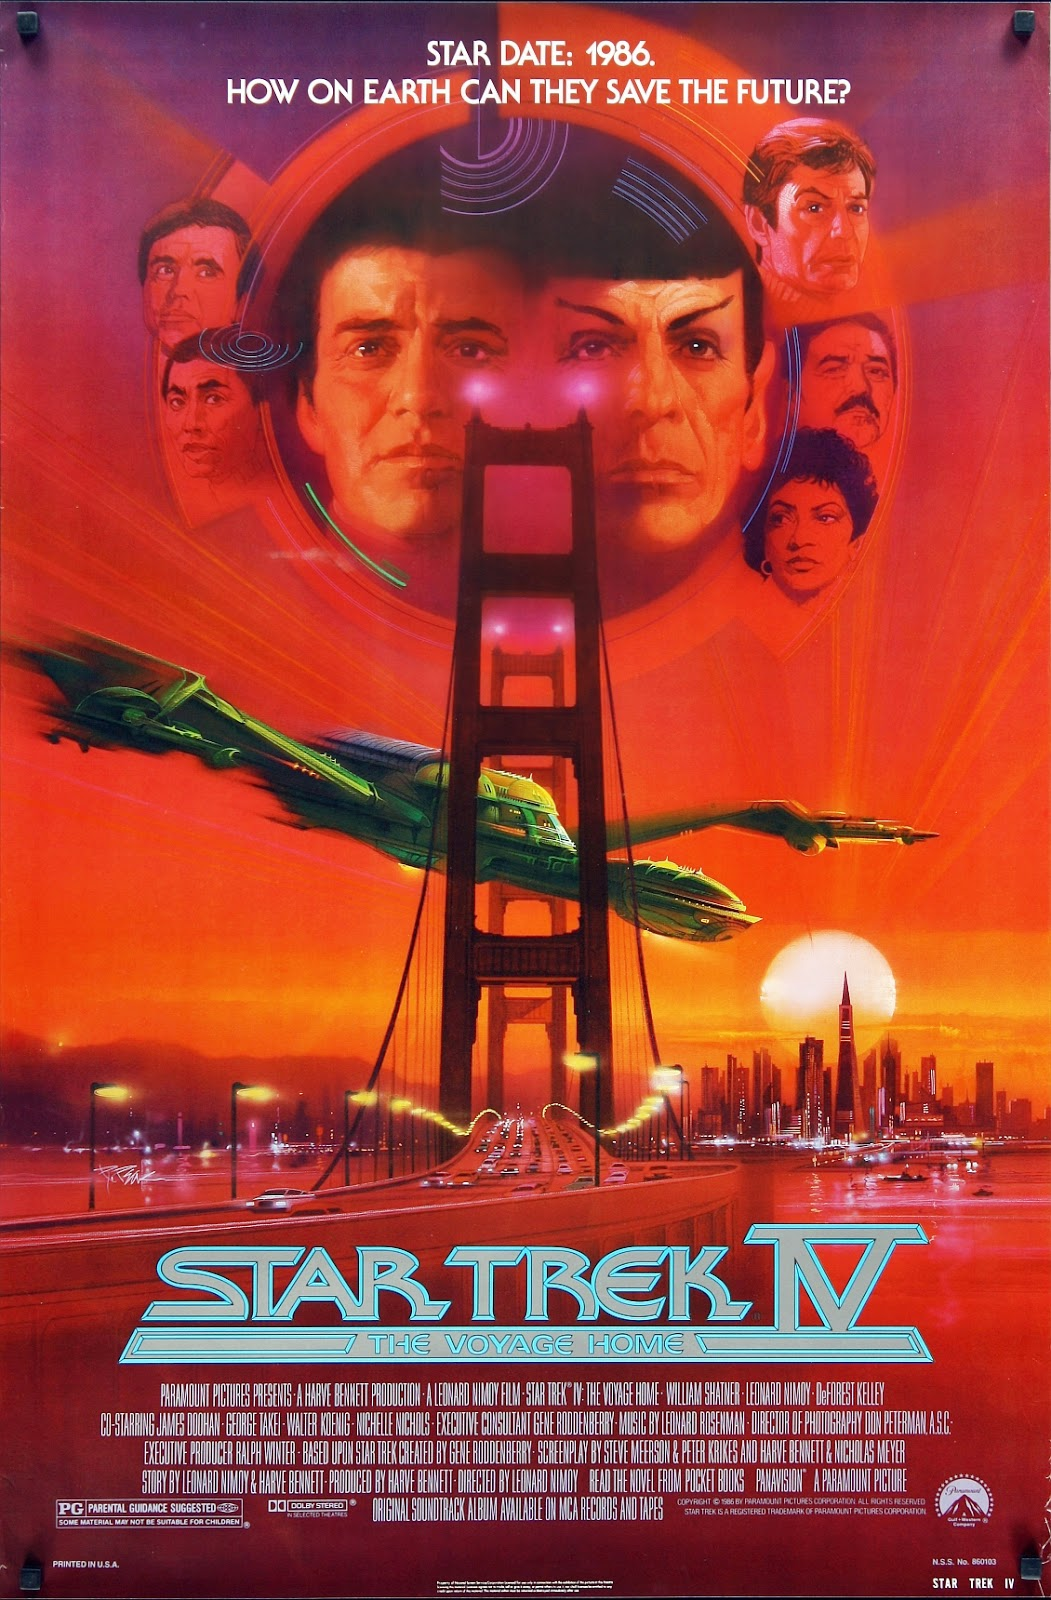 Star Trek IV - The Voyage Home 1